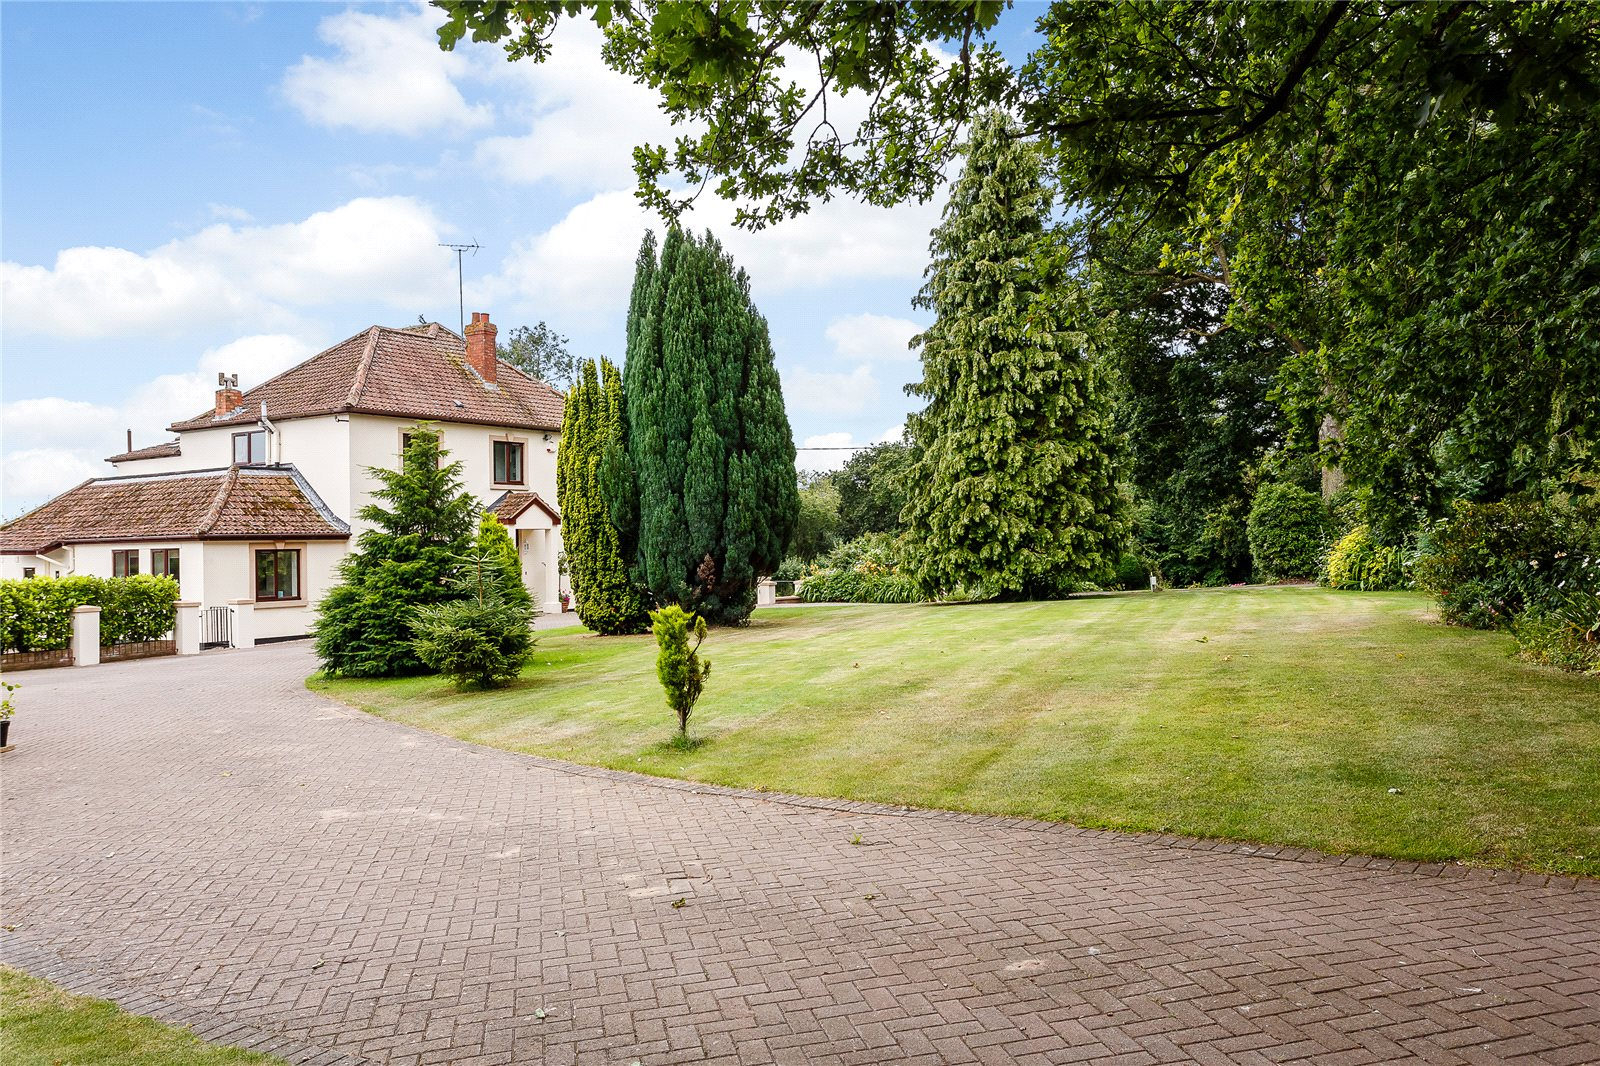 Additional photo for property listing at Sidbrook, West Monkton, Taunton, Somerset, TA2 Taunton, England